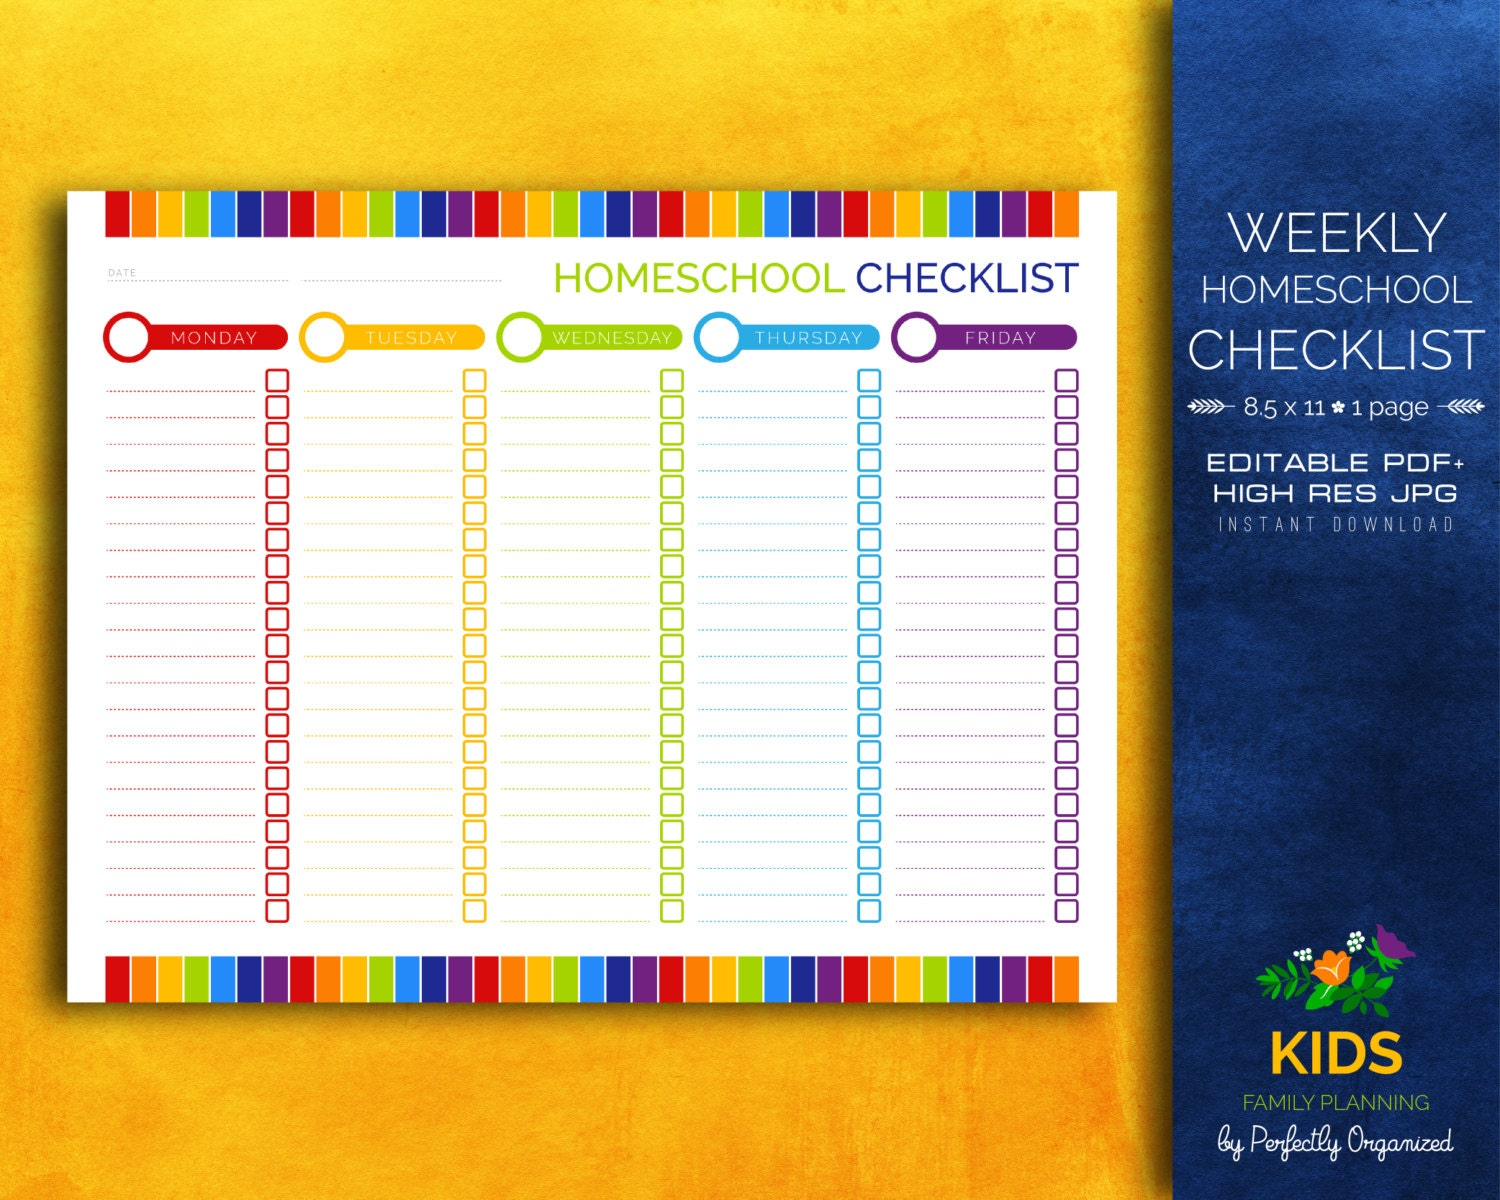 Diy Calendar Homeschool : Weekly homeschool checklist lesson plan kids